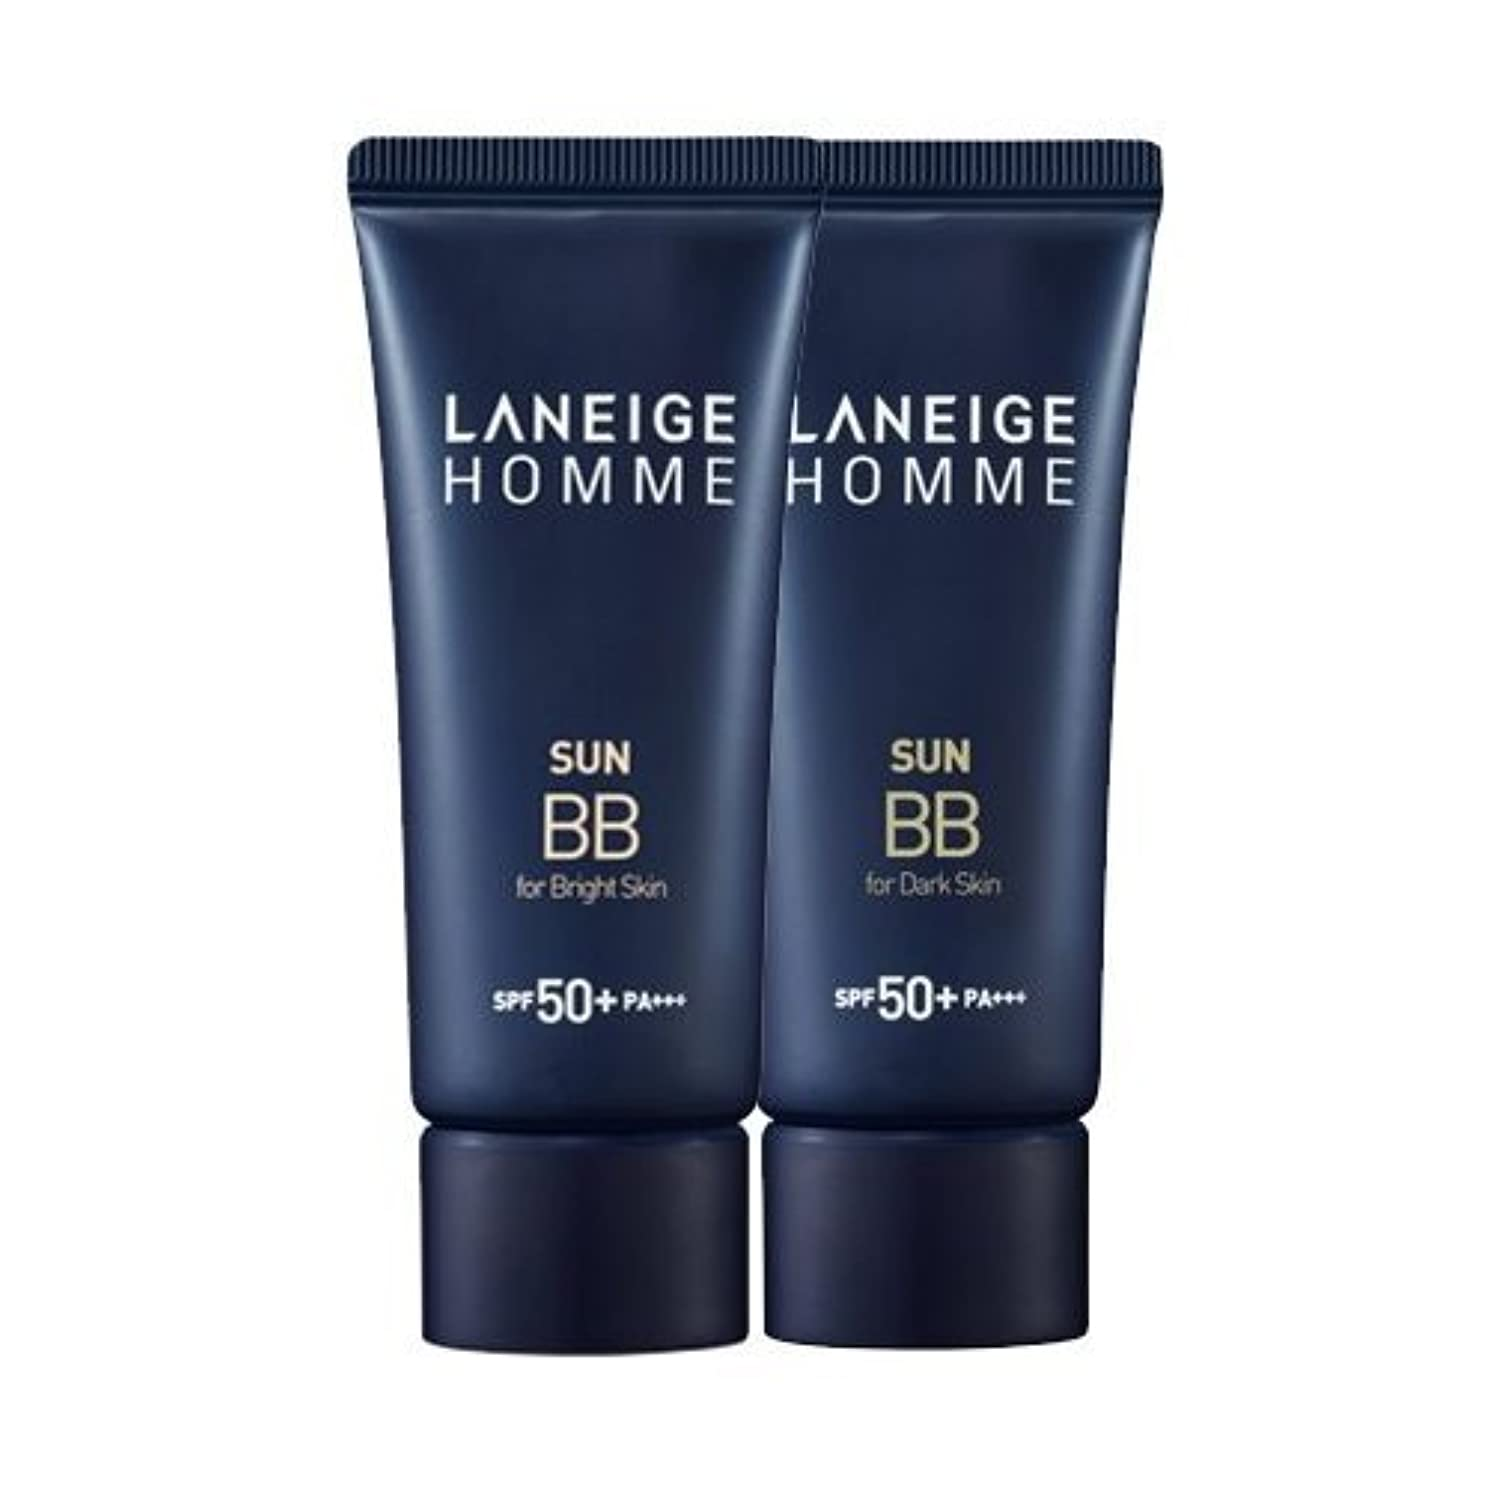 遅滞お父さん残酷なKorea Cosmetics 2014 Advanced Laneige Homme Sun BB Cream (SPF50+/PA+++) - #Dark skin